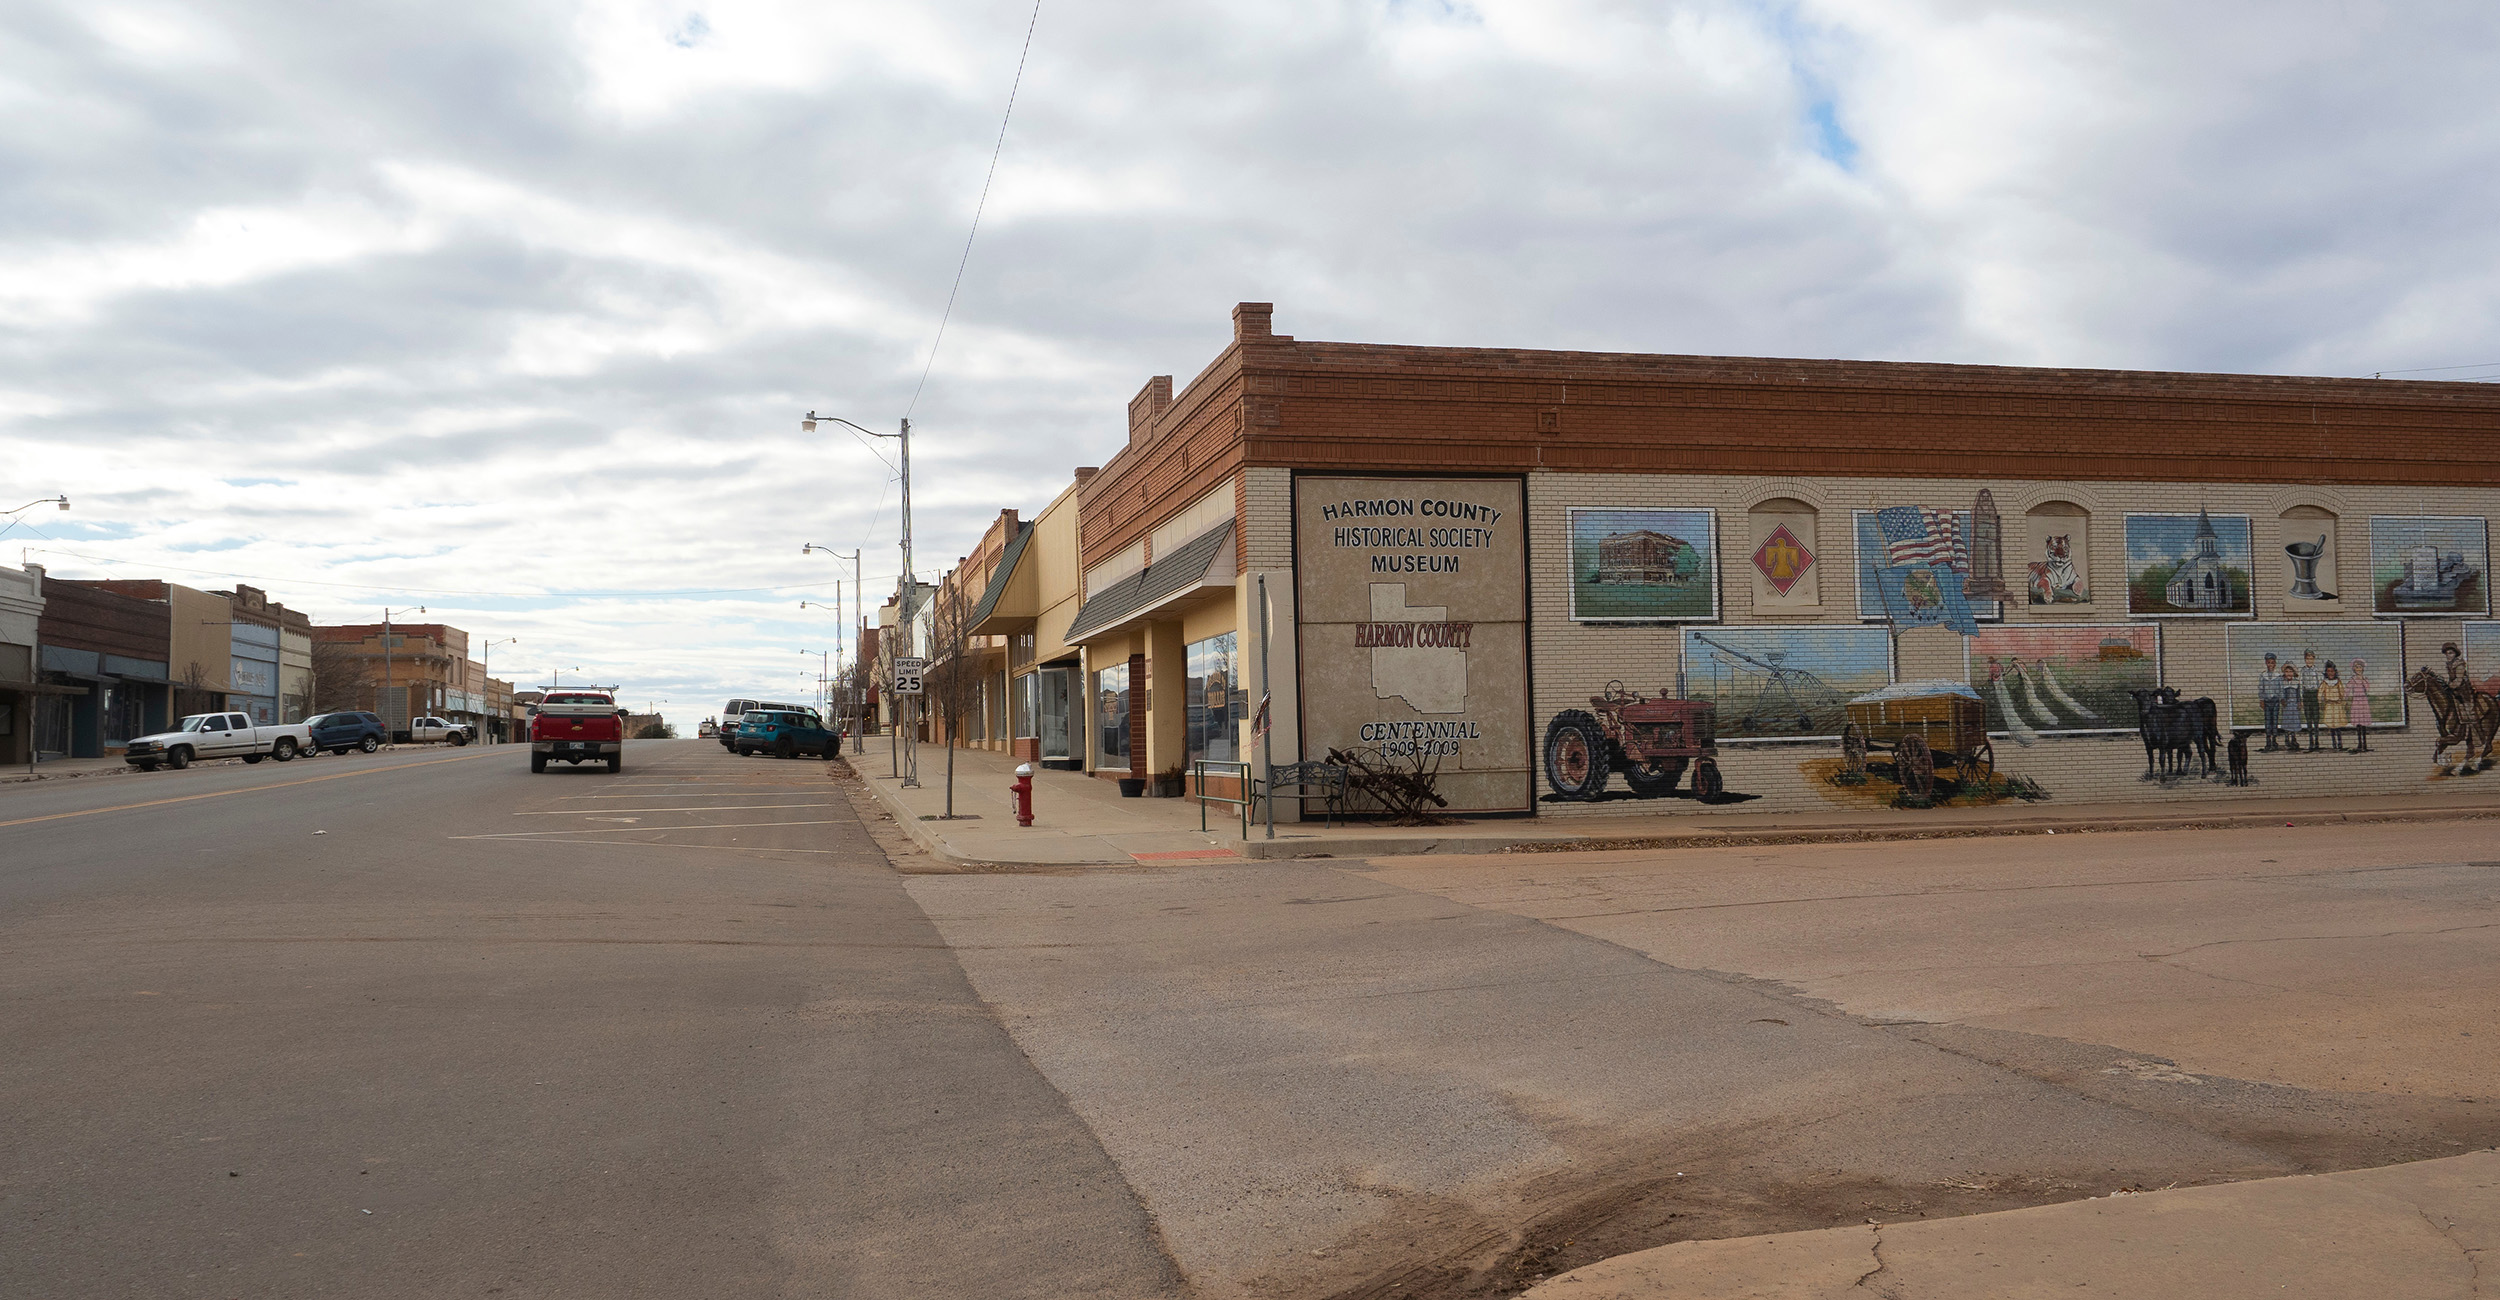 Photo of a rural town's main street with agricultural-inspired wall art.